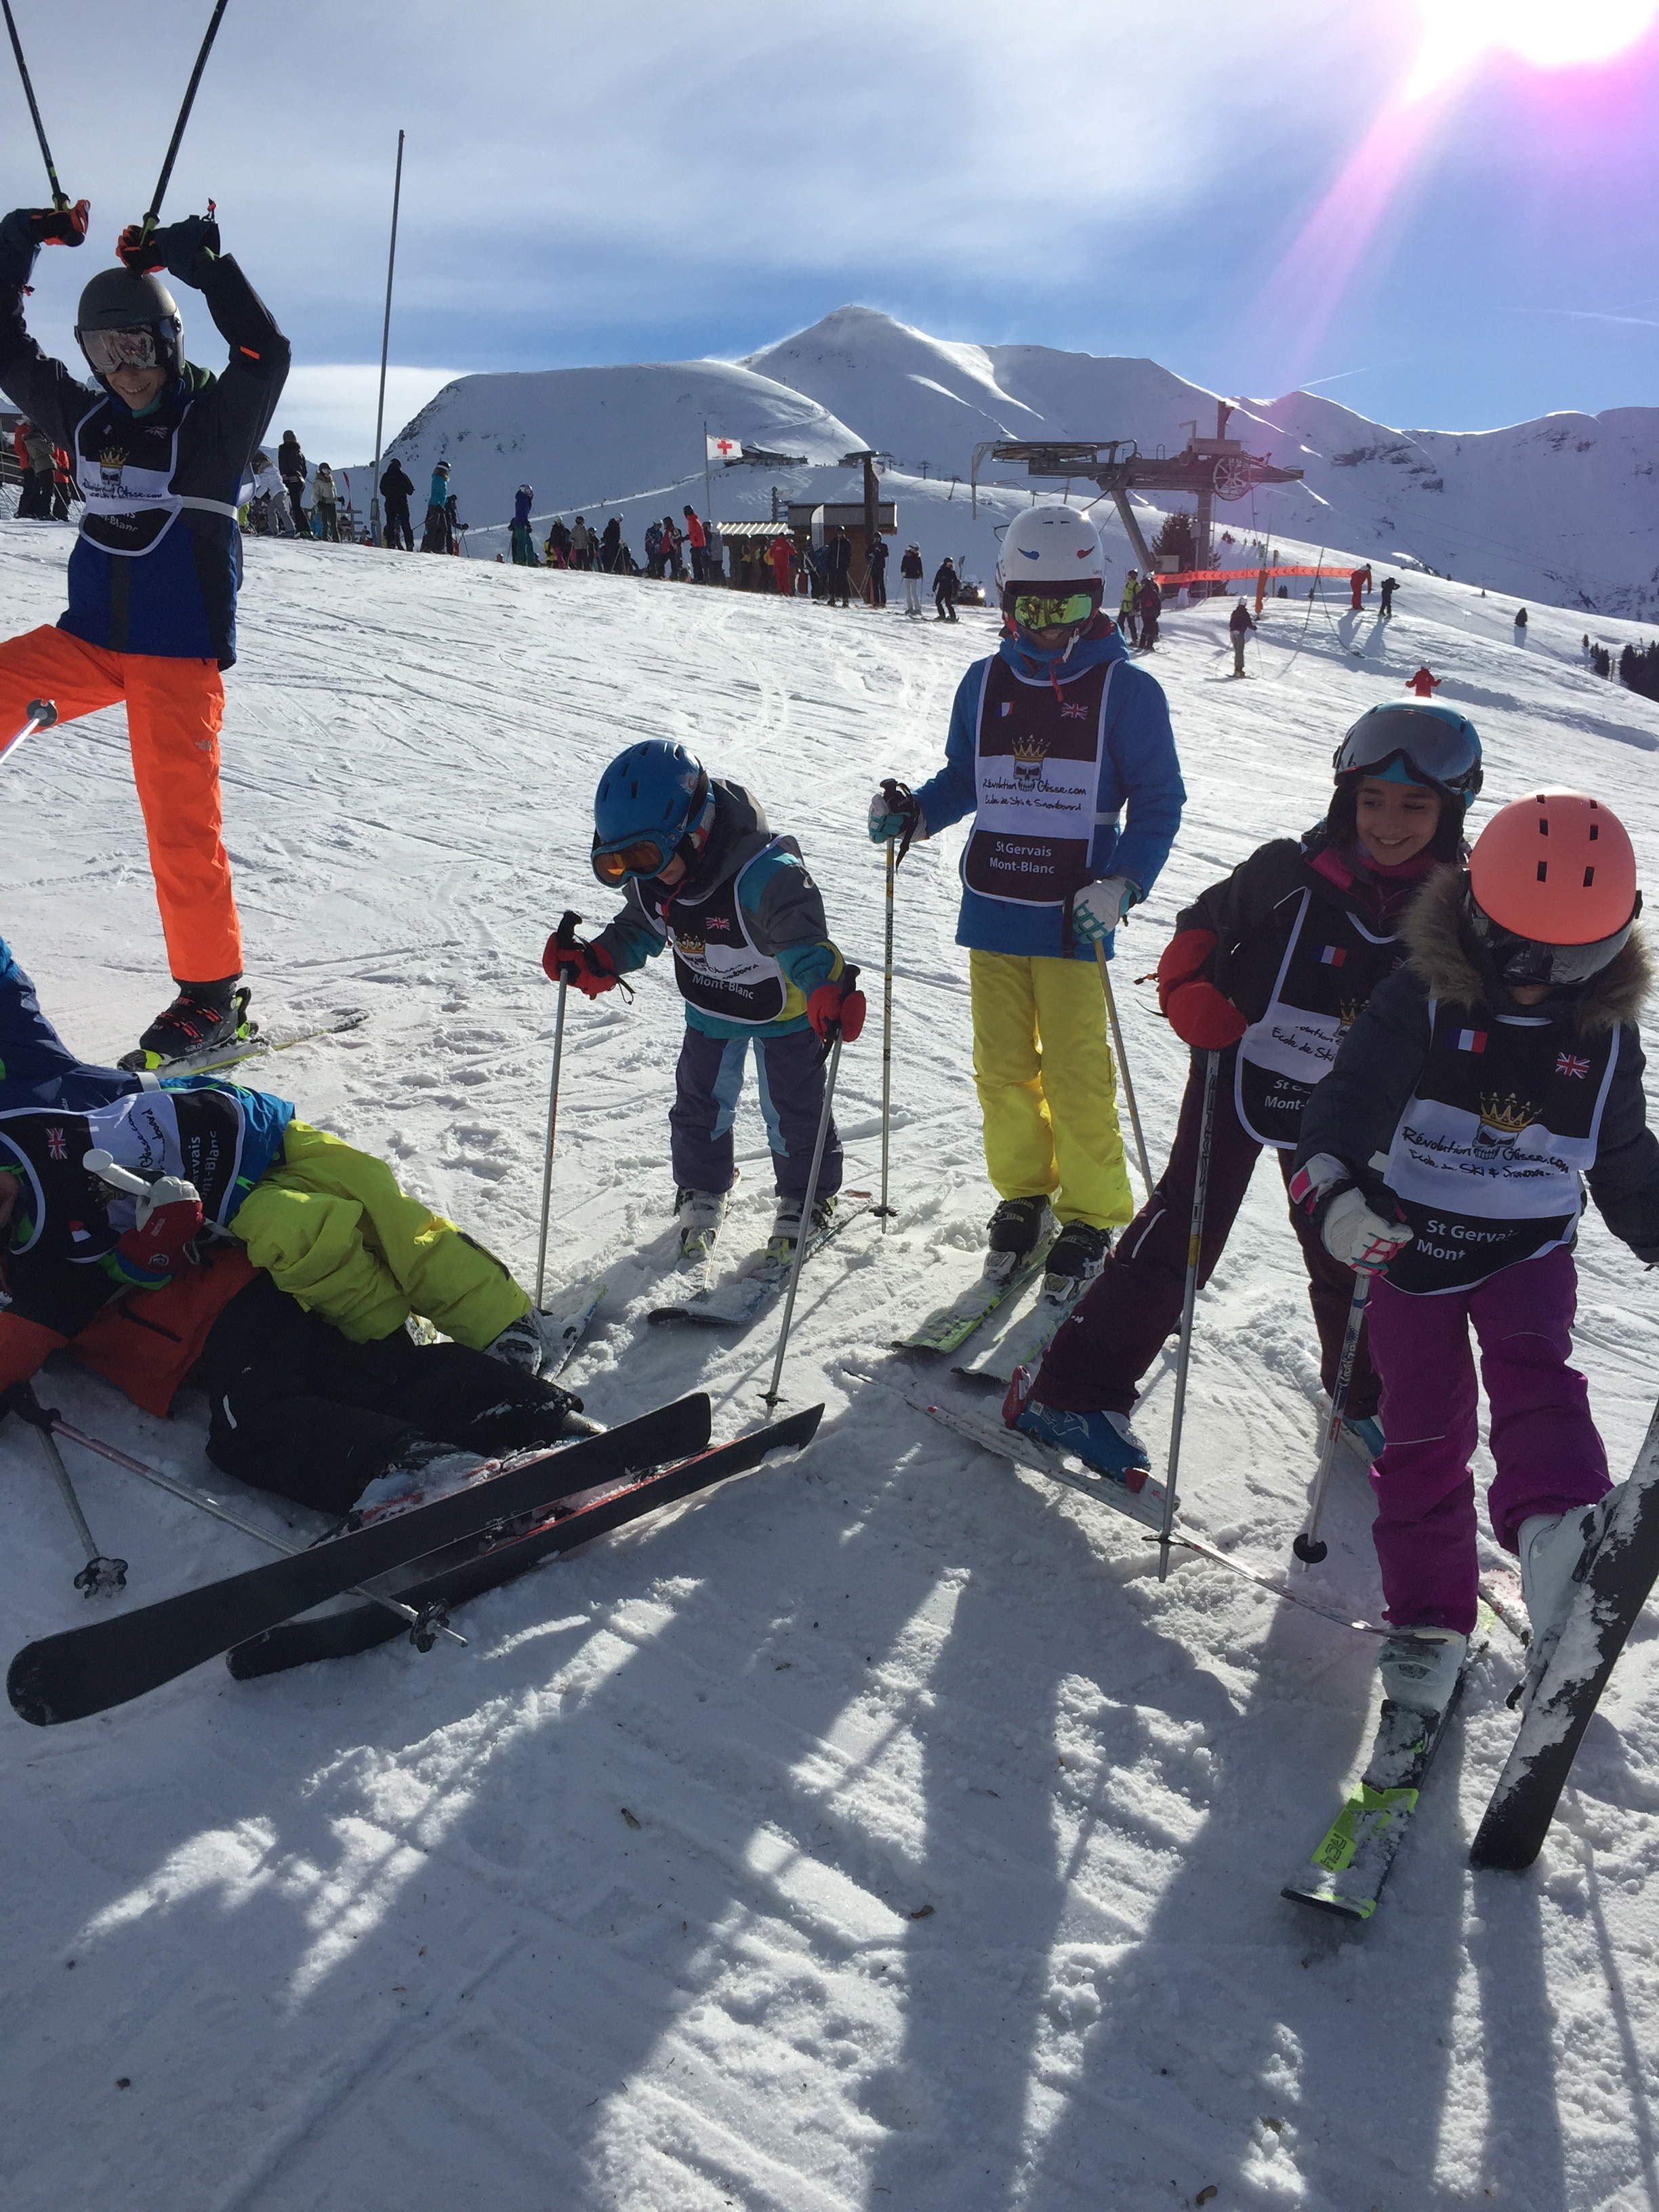 Collectifs Ski  6,12 ans / Ski group  6 to12 years old (13h -15h)